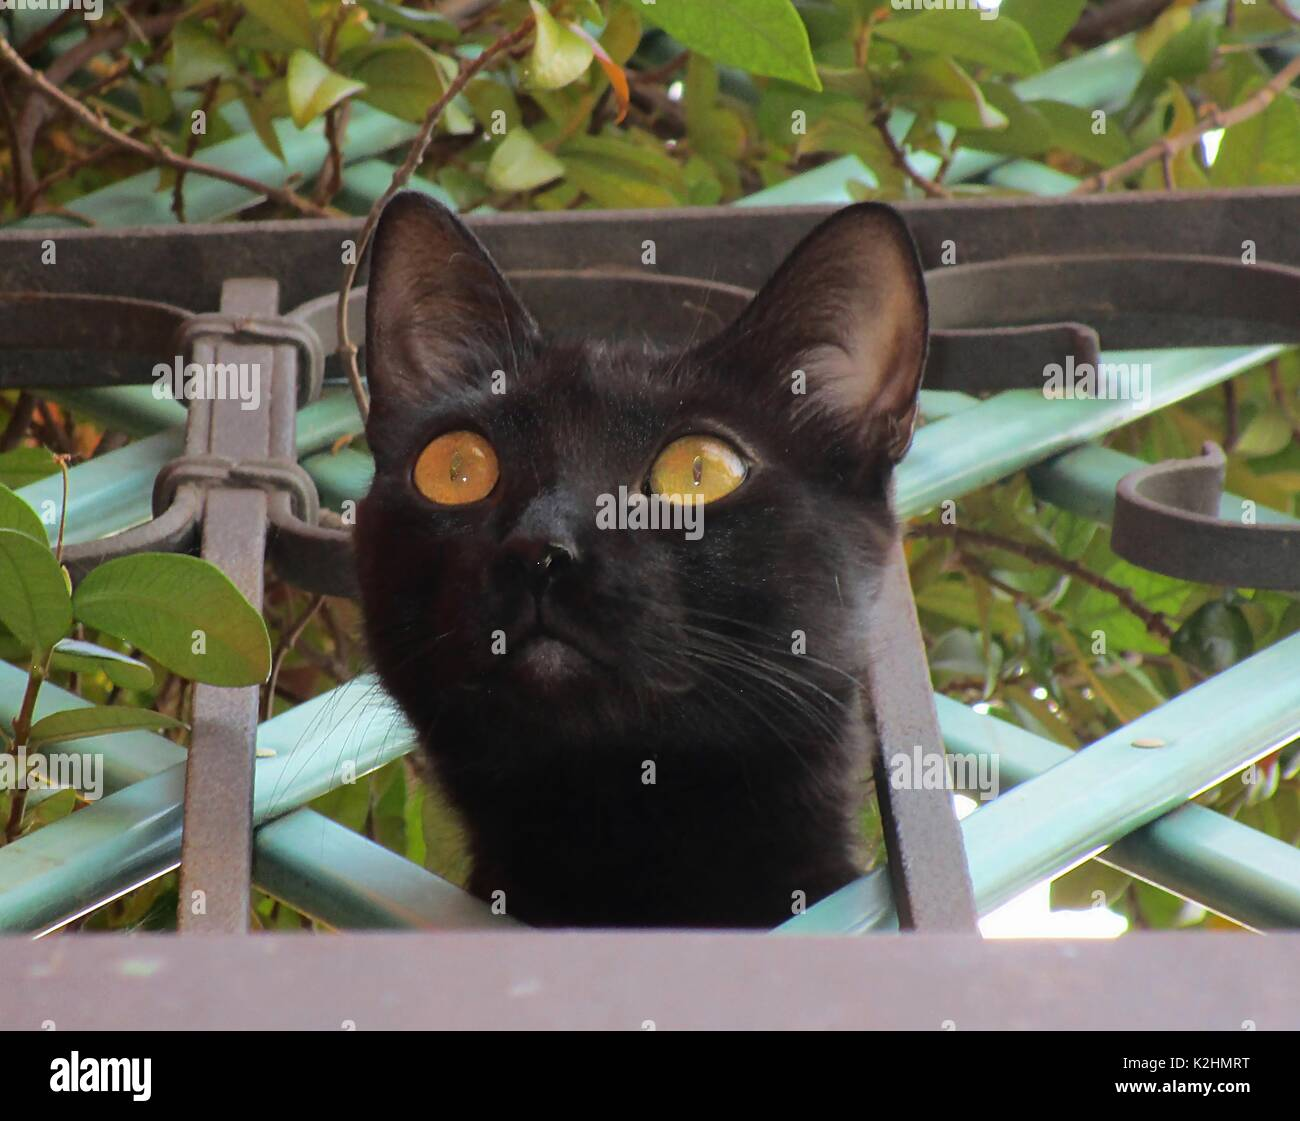 Curiosity killed the cat - Stock Image